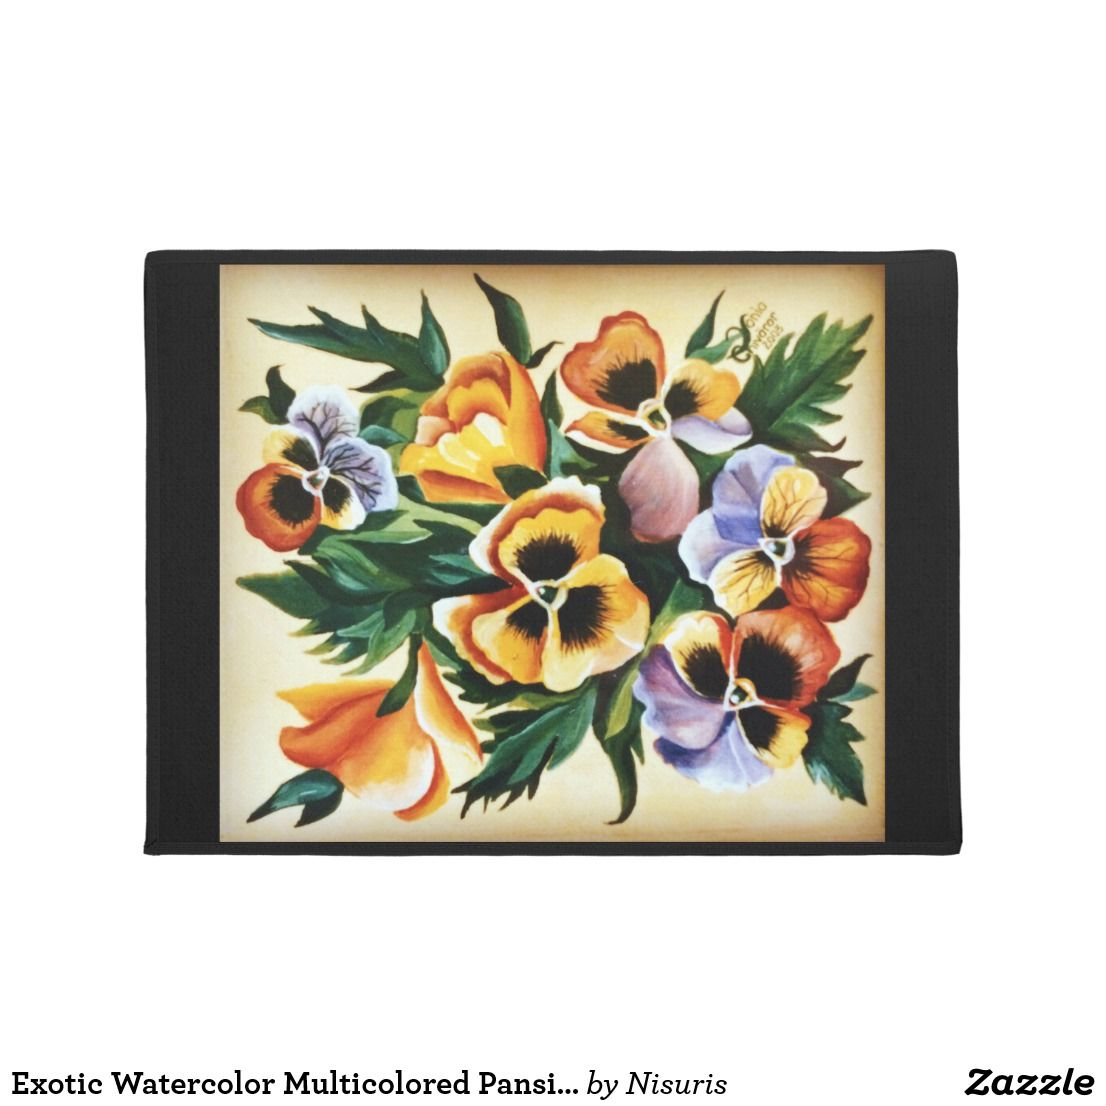 Exotic watercolor multicolored pansies an acrylic painting which